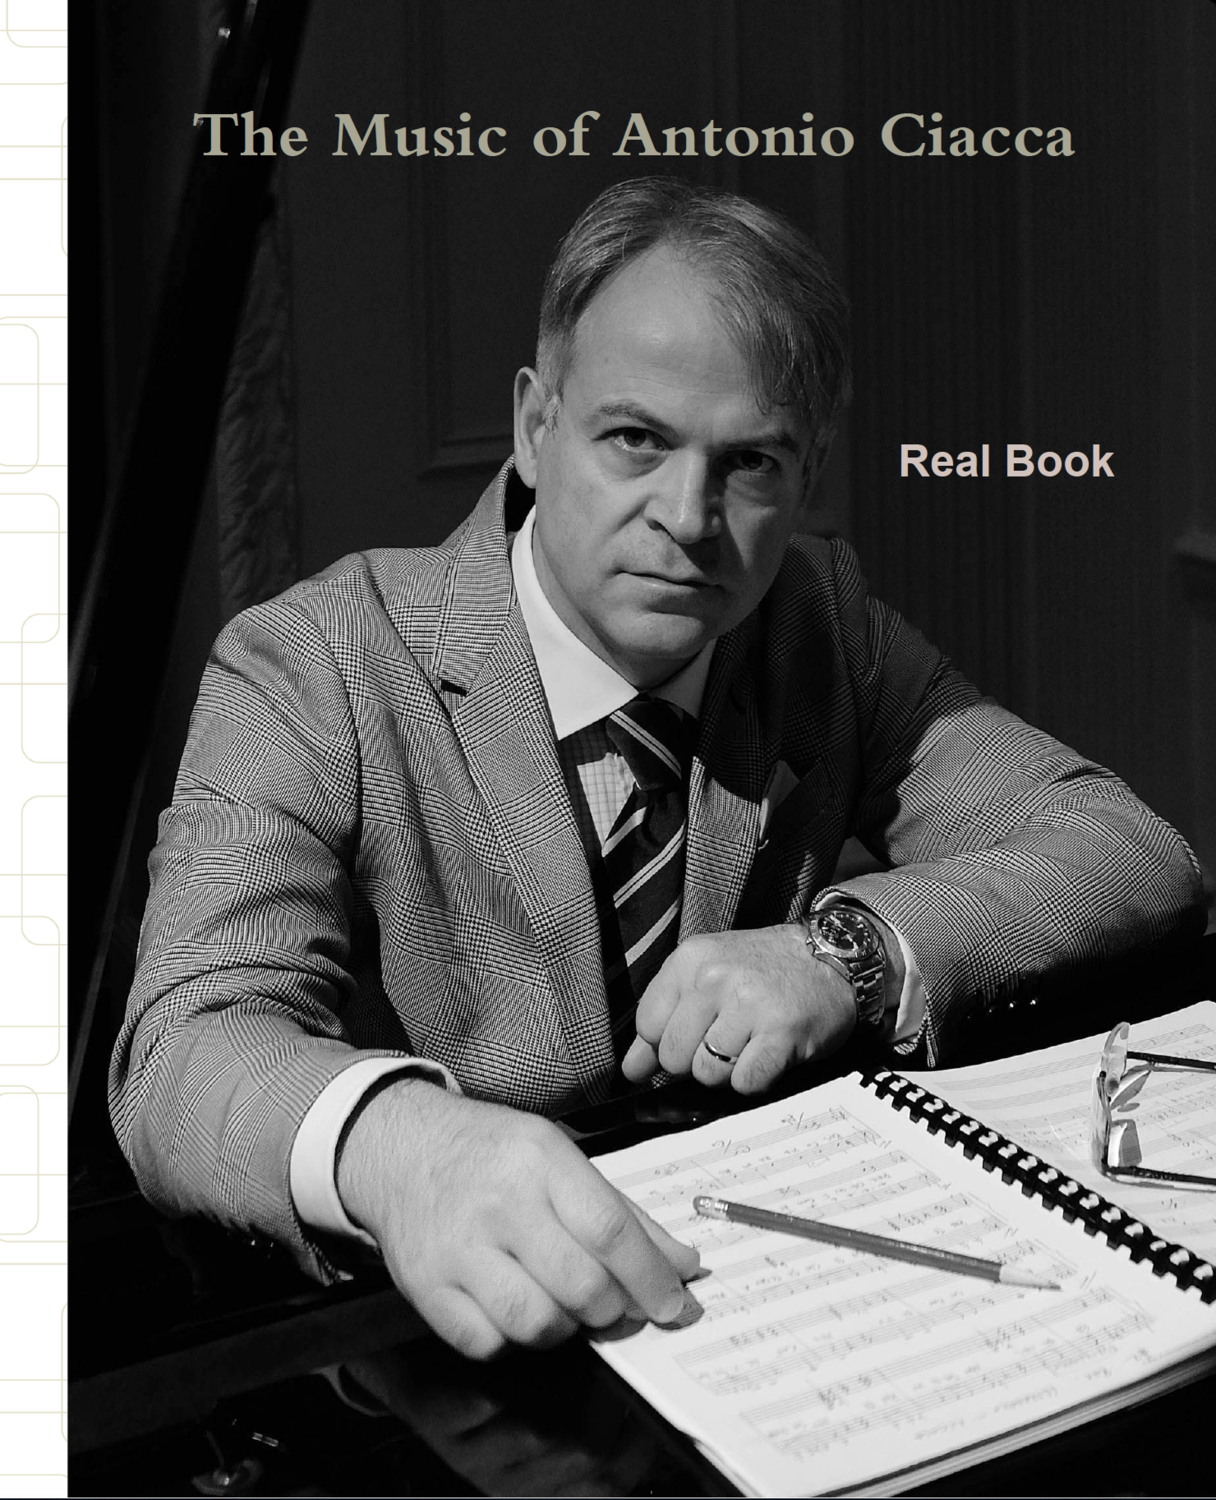 The Music of Antonio Ciacca - Real Book